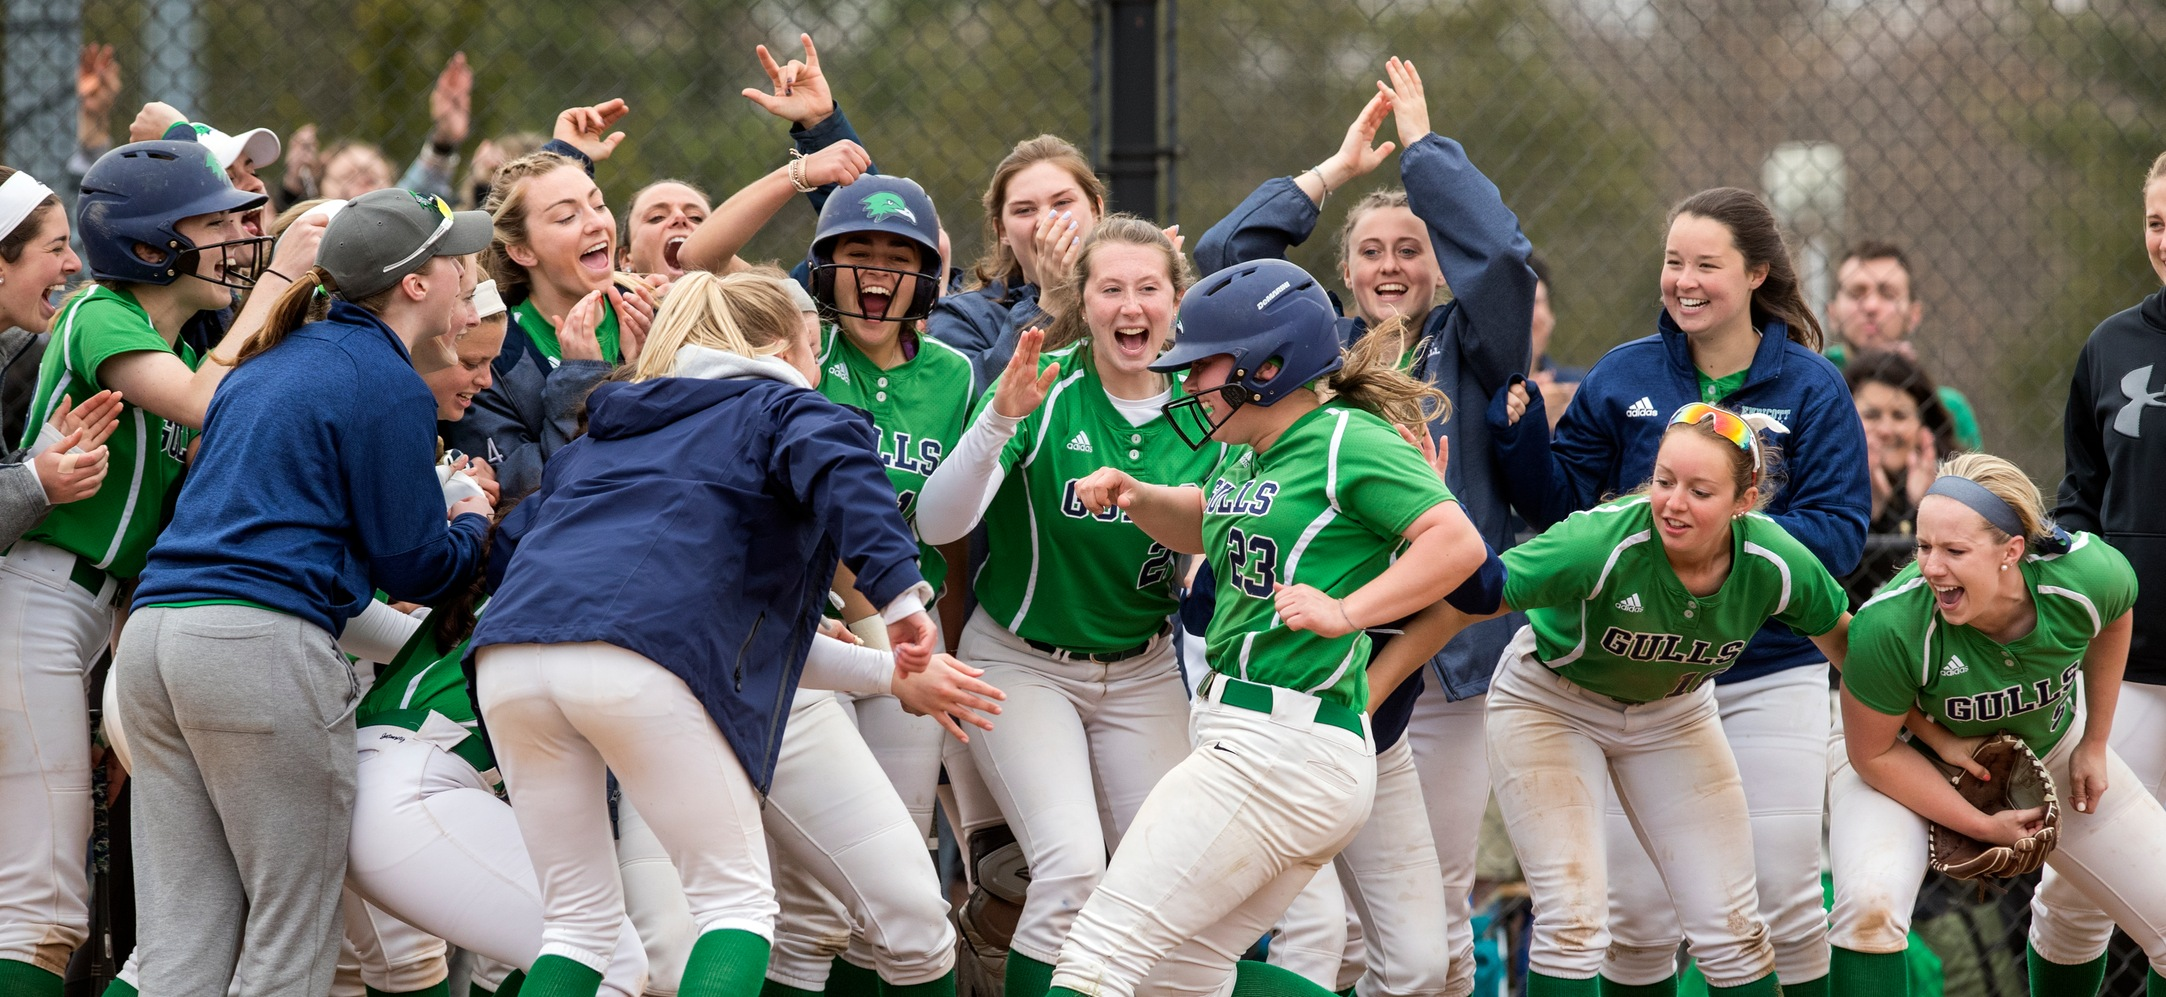 Hayley Arduini crosses home plate after a home run as her teammates celebrate around her.